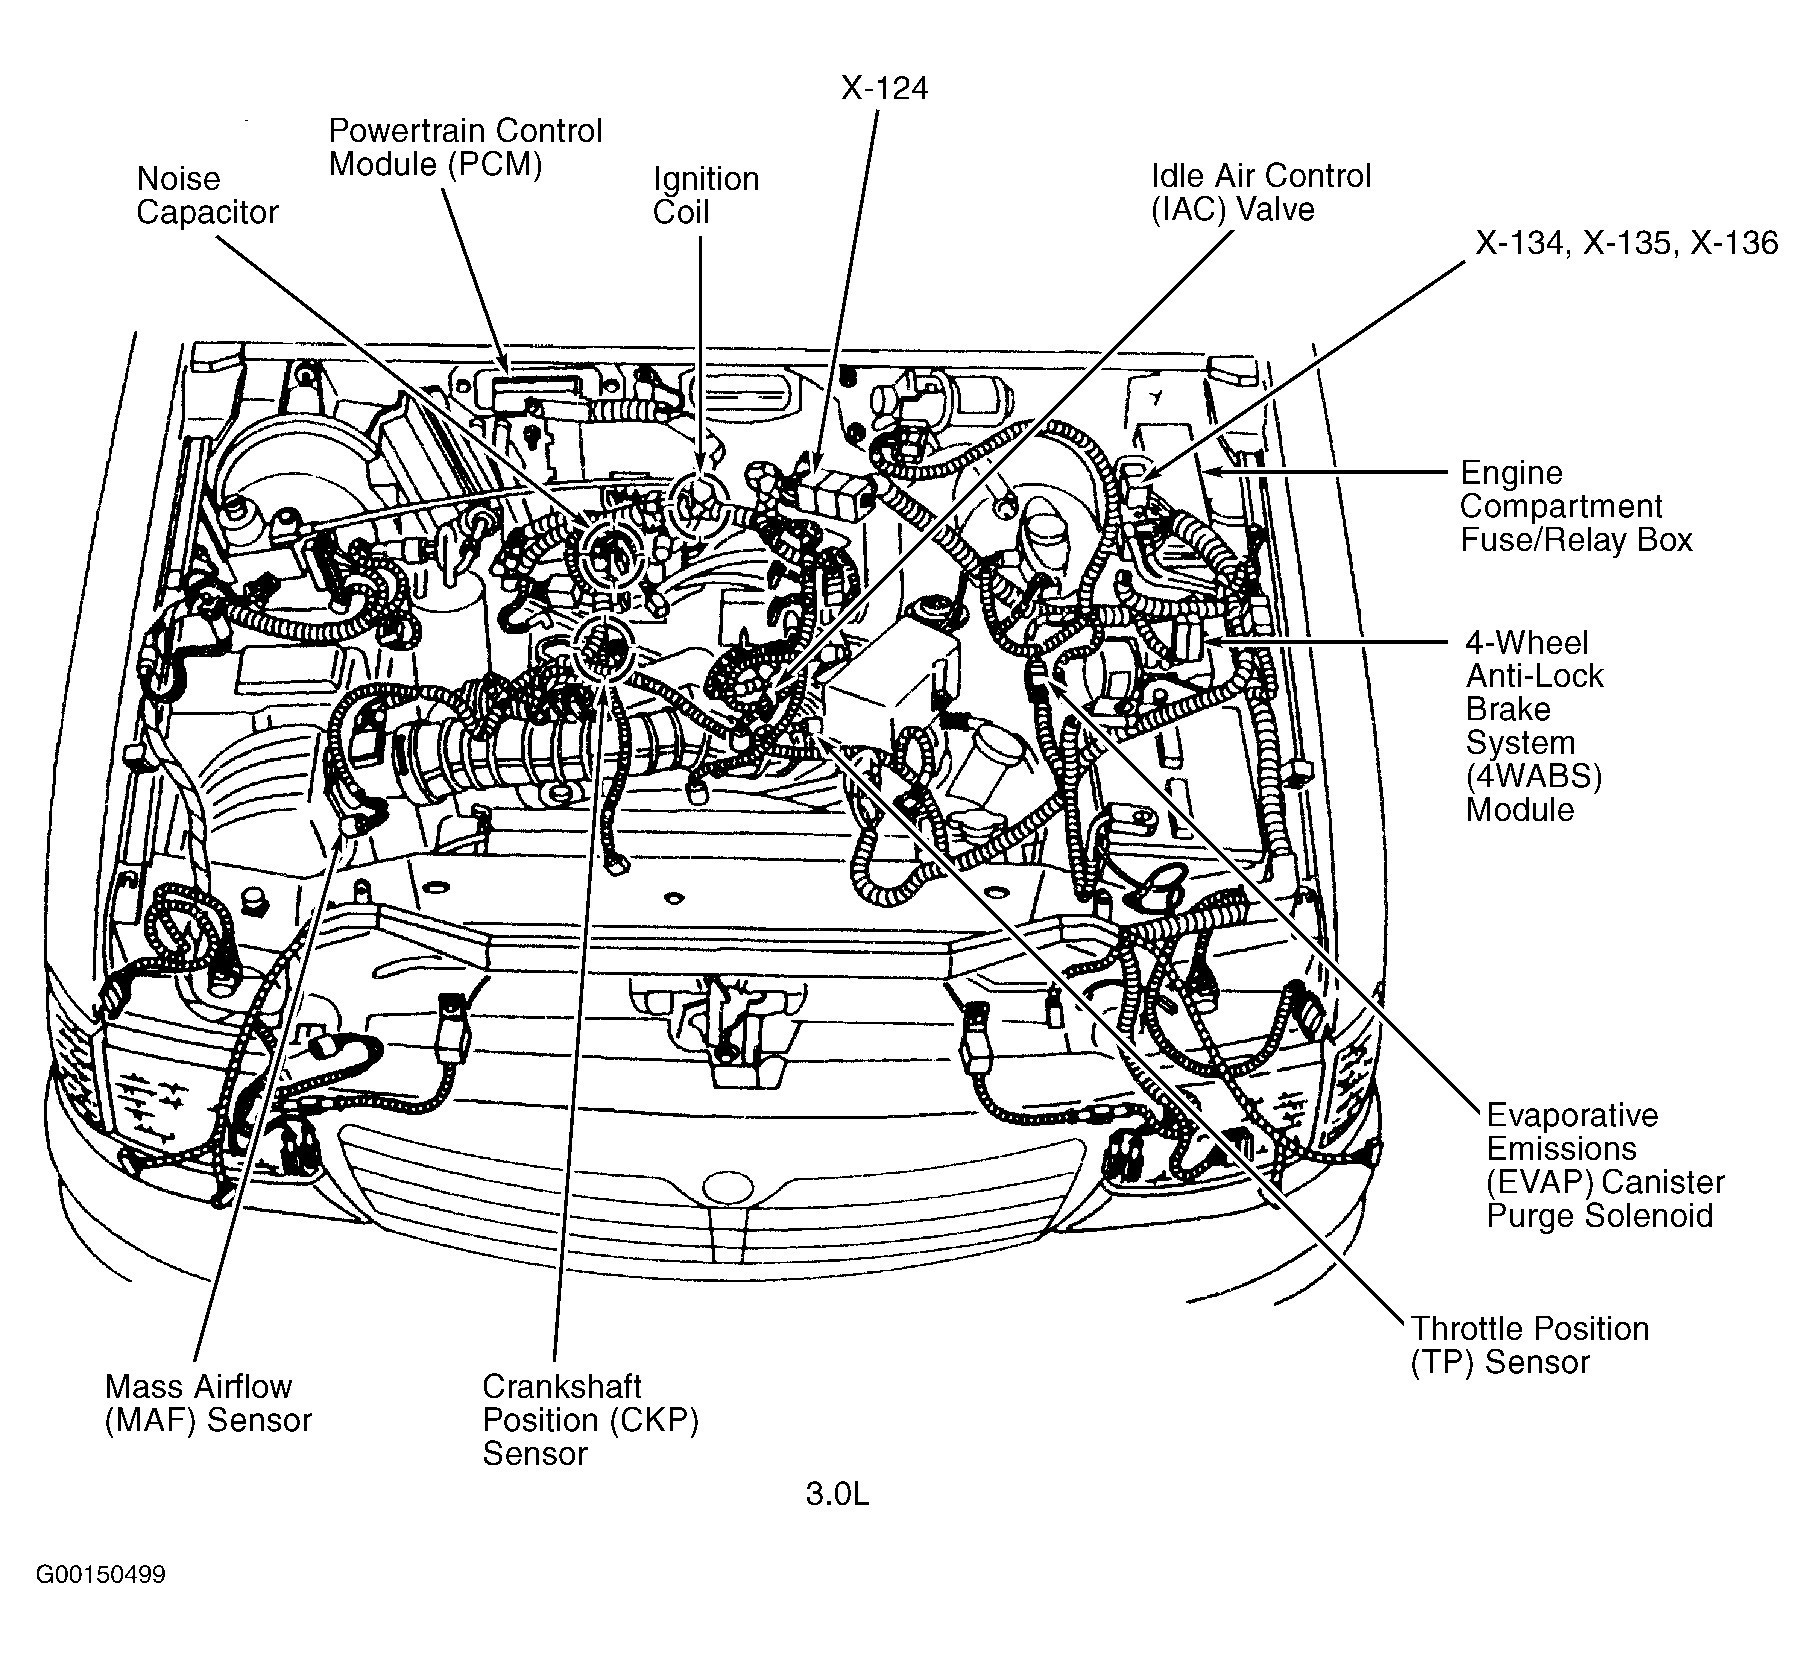 Mazda 6 Wiring Diagram New Mazda 6 Wiring Diagram Sample Pdf Mazda B3000 Engine Diagram Fresh